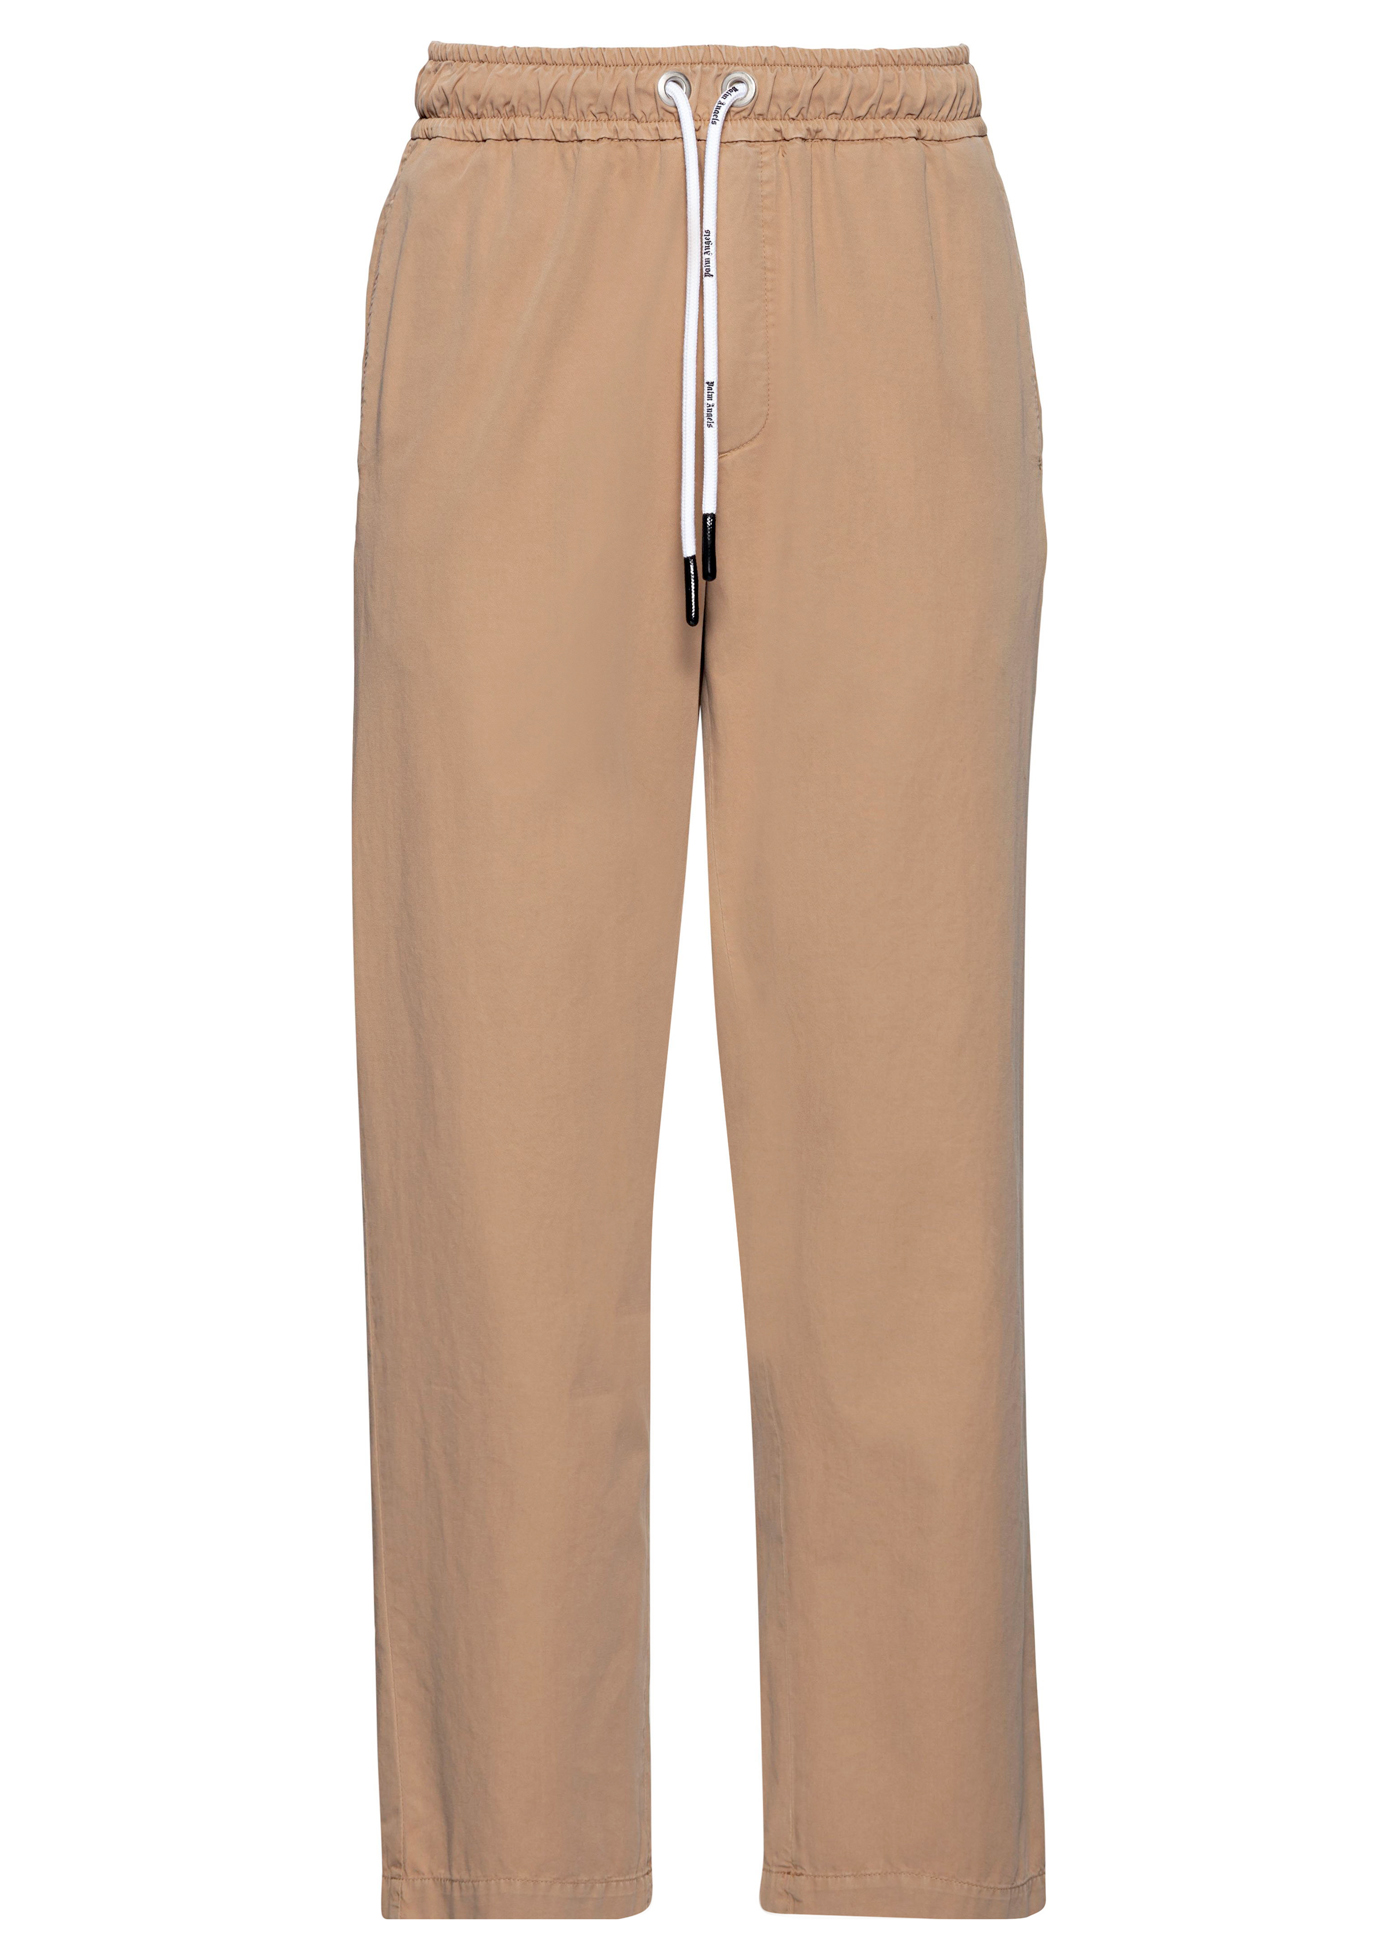 PXP WASHED PALM CHINOS image number 0